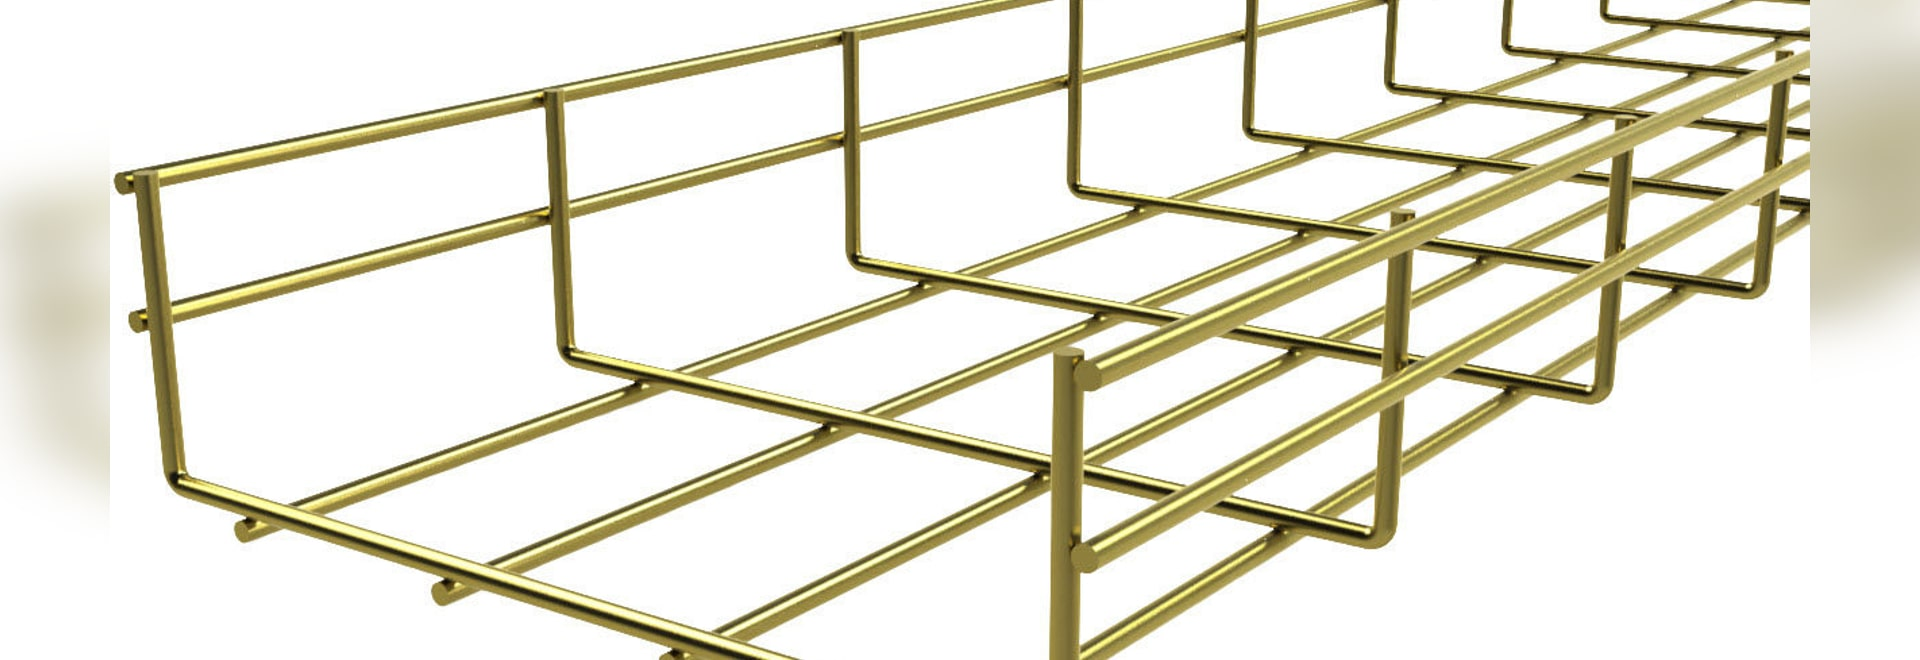 NEW: steel wire mesh cable tray by BASOR Electric, - BASOR Electric,